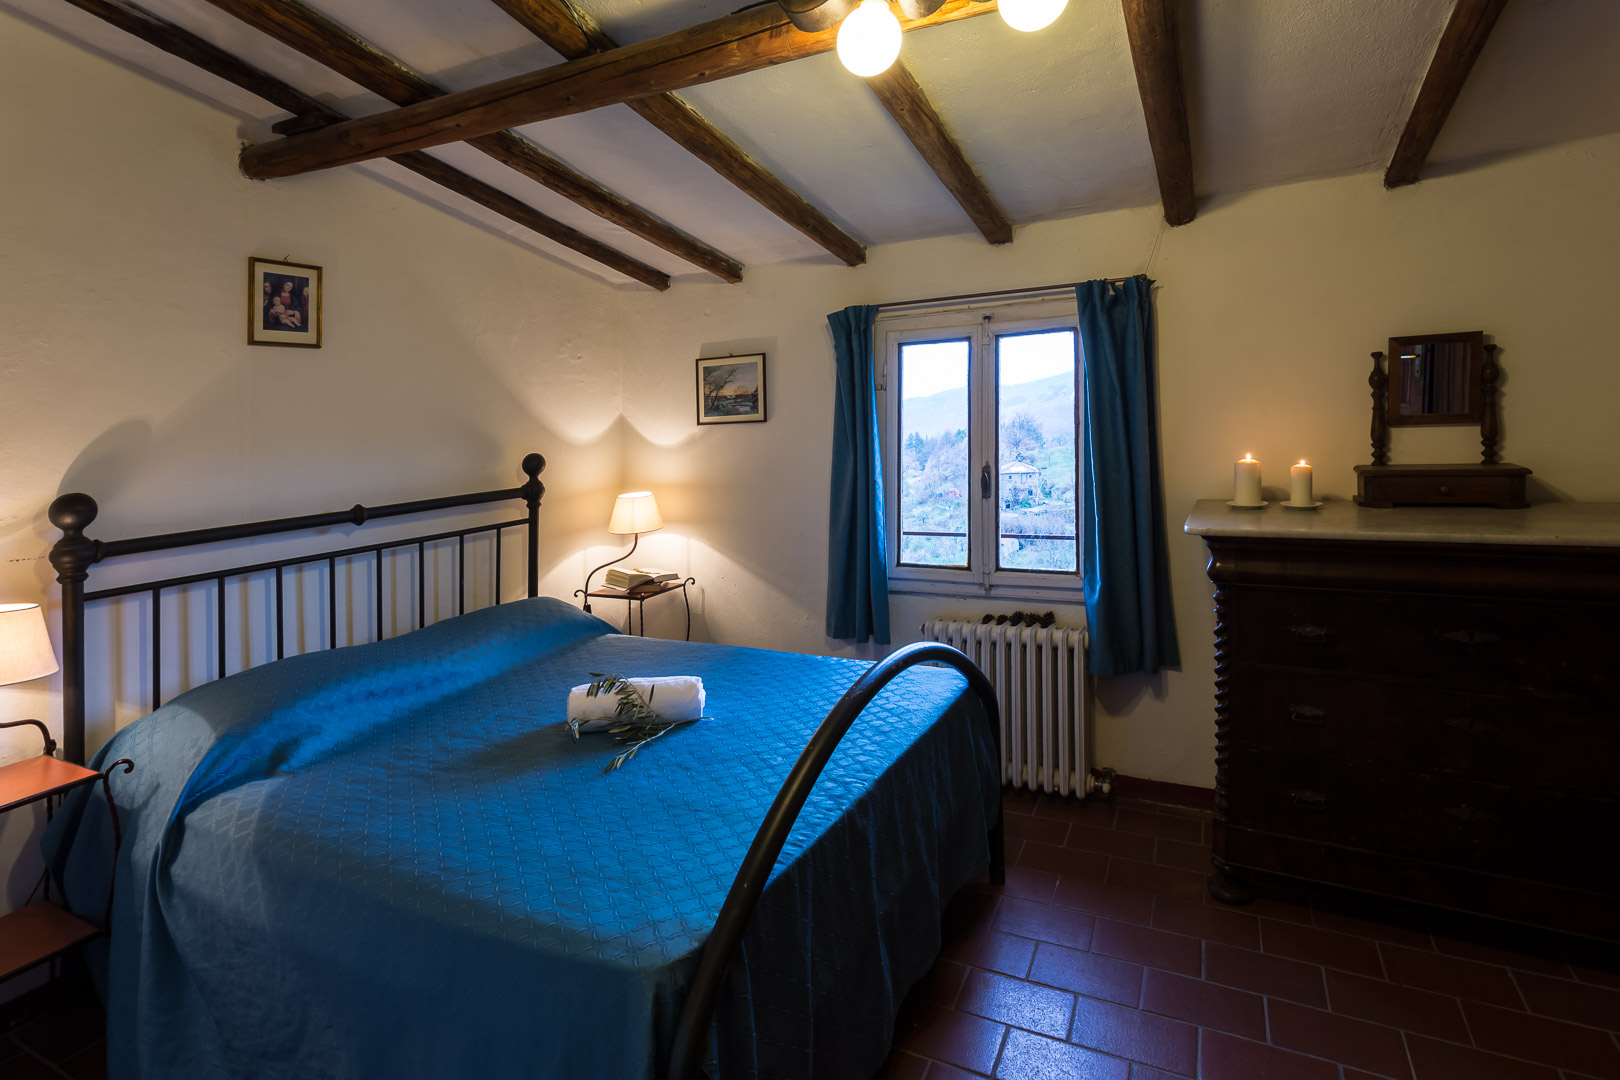 The Castle Studio - Fit for one, but spacious enough for two or 3, the Studio Apartment has a queen size bed, a single bed, closet, and writing desk with wooden chairs. This Castle Studio also features a kitchenette with basic tools for making pasta & coffee as well as a bathroom.